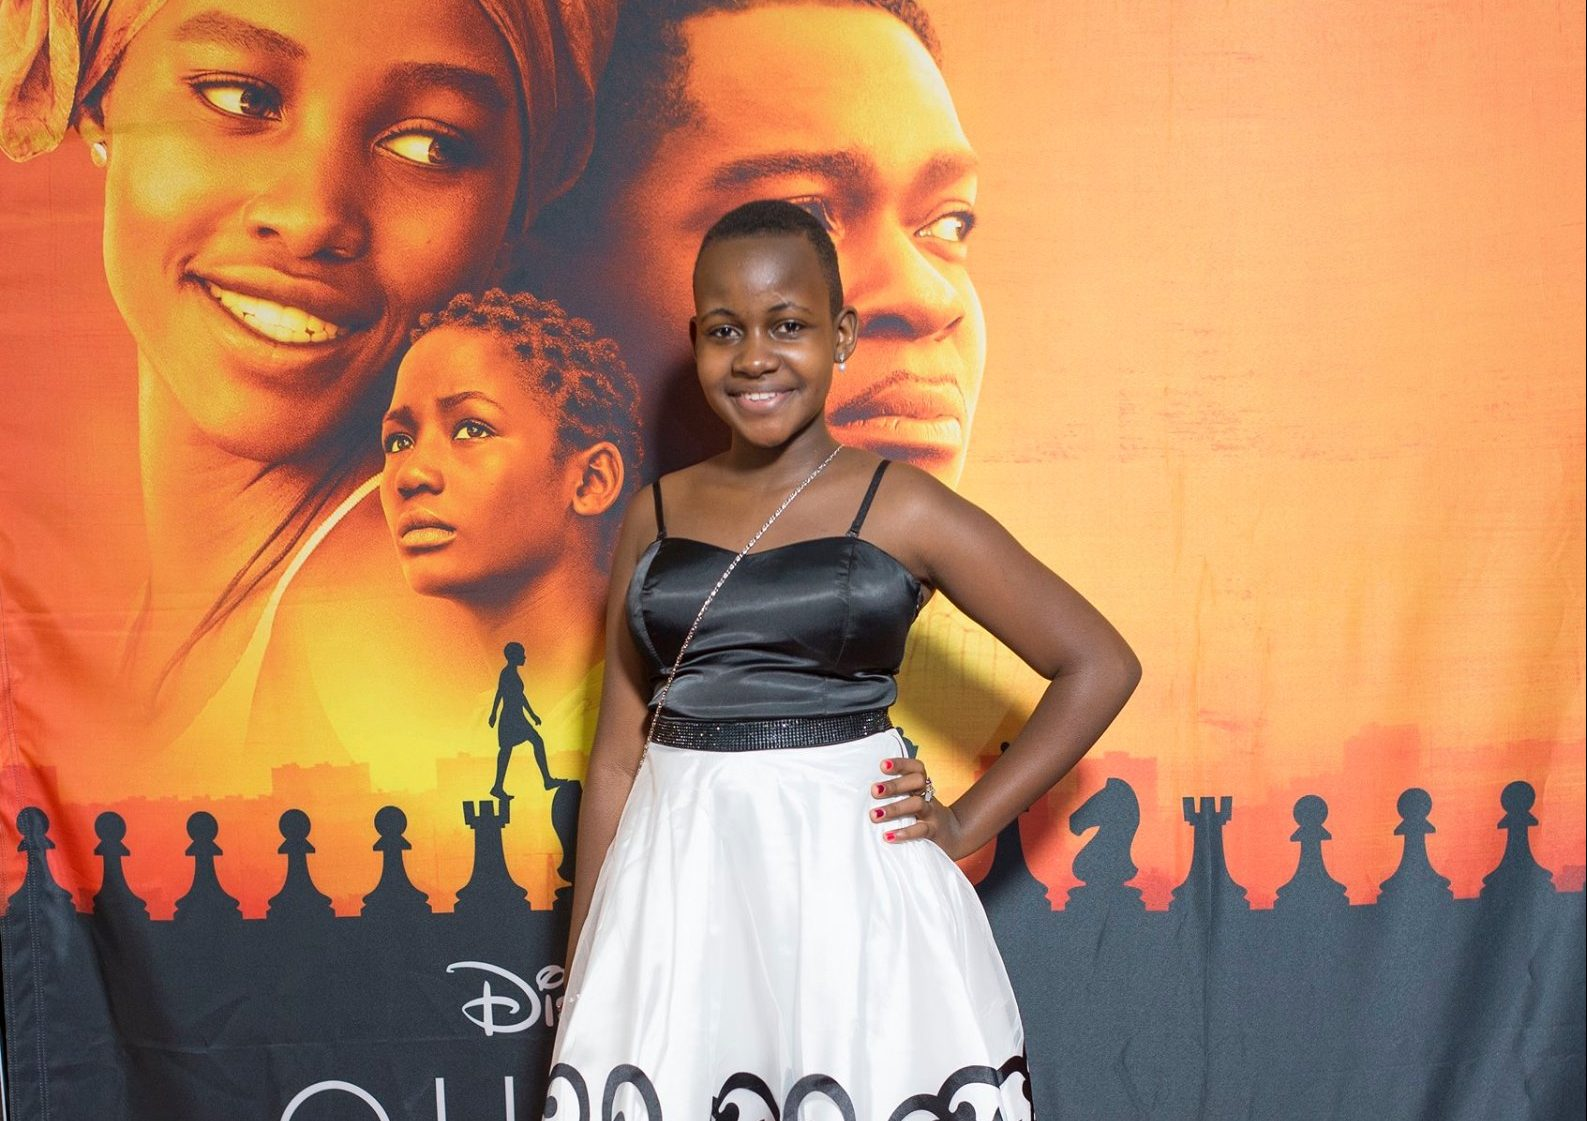 Disney star Nikita Pearl Waligwa has died at age 15